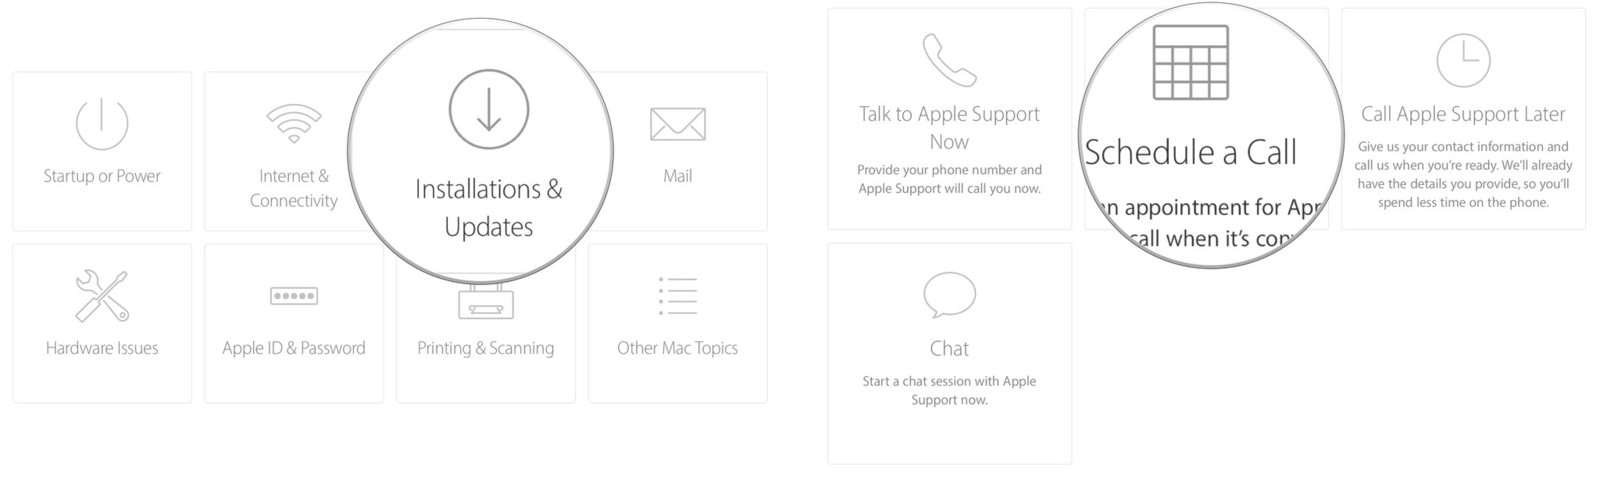 Select a subtopic, then select a way to contact Apple